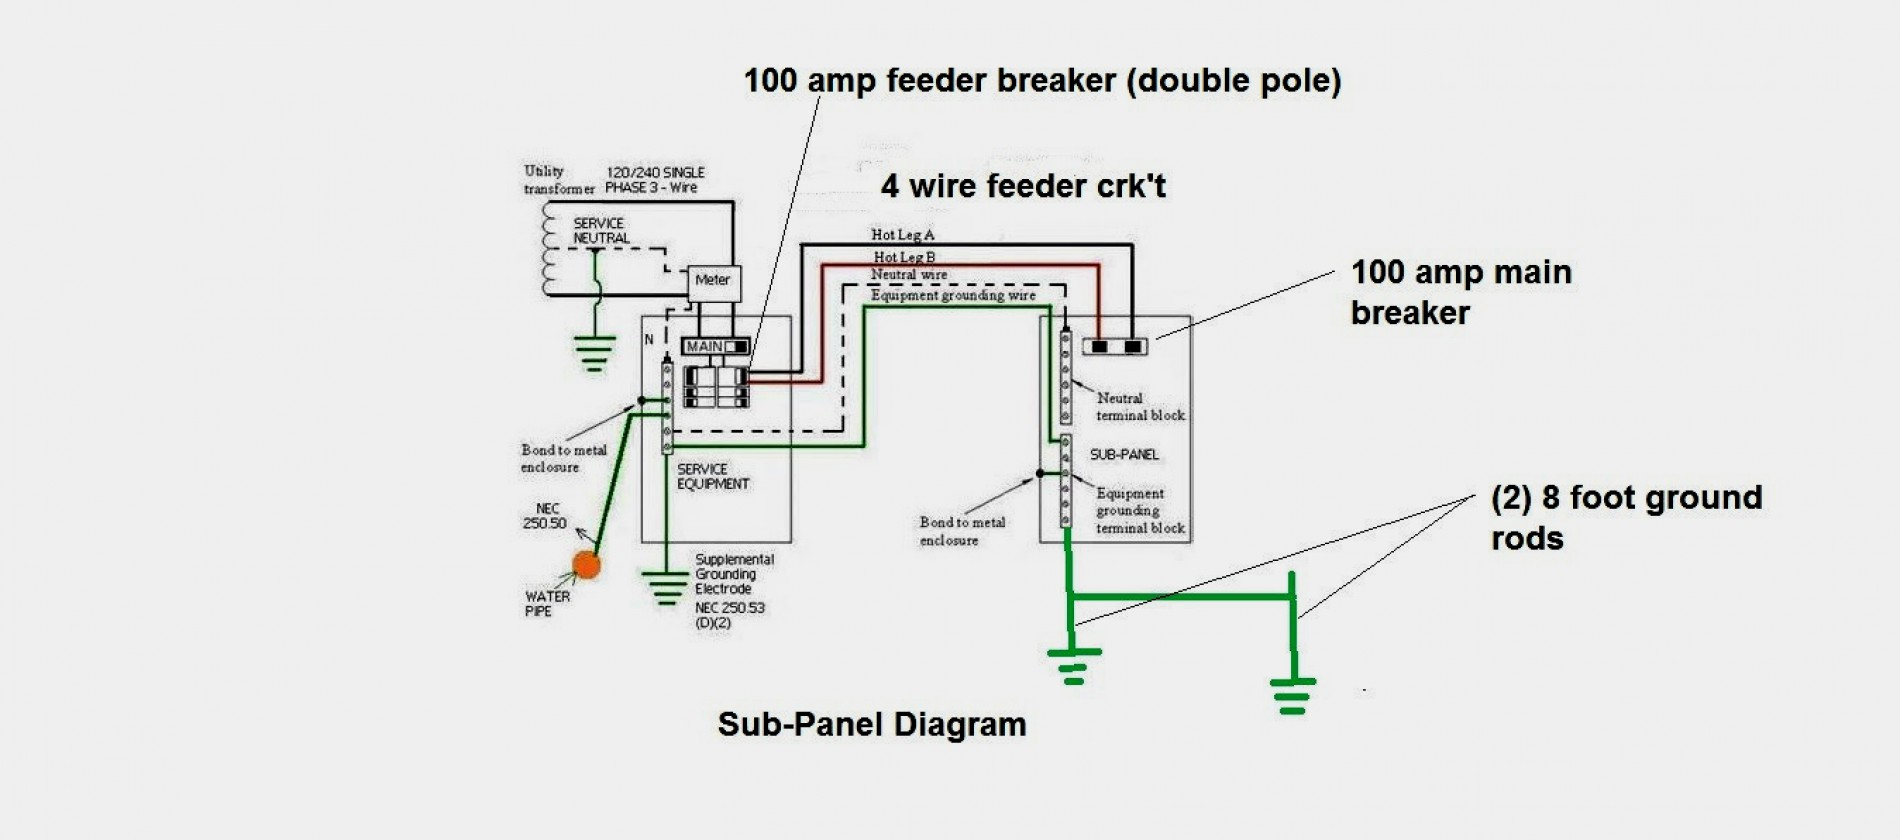 Remarkable Typical Wiring Diagrams Swimming Pool Data Wiring Diagram Today Wiring 101 Orsalhahutechinfo